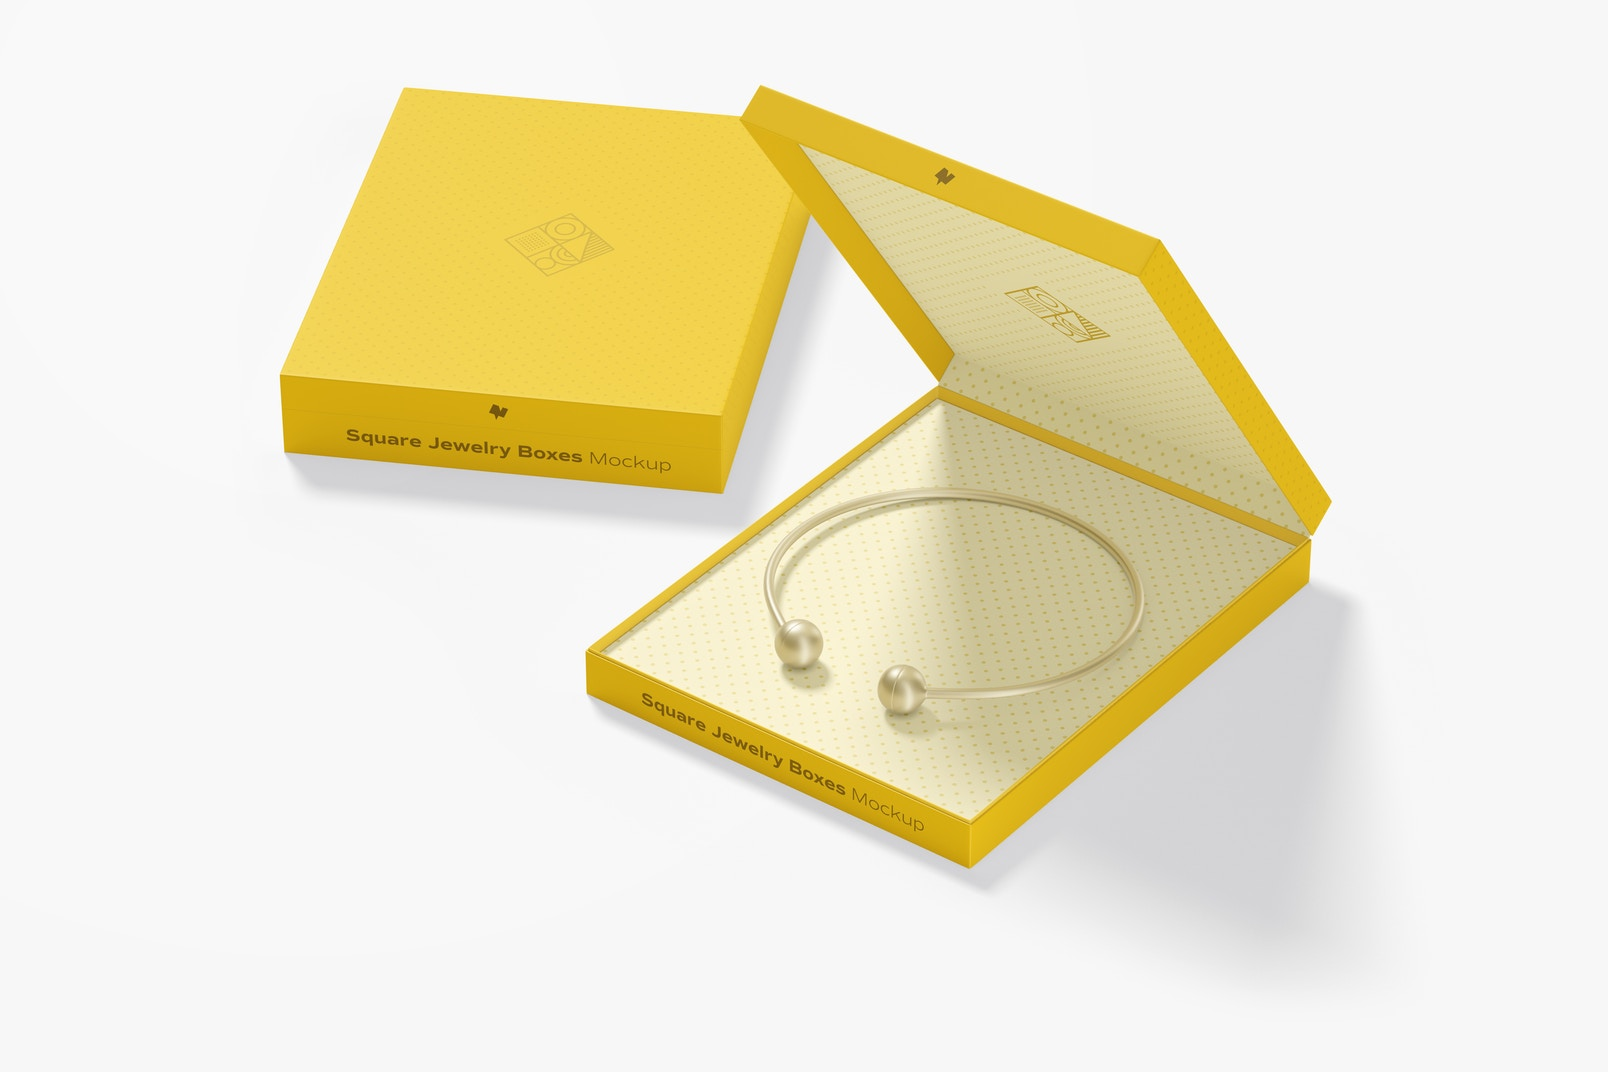 Square Jewelry Boxes Mockup, Opened and Closed